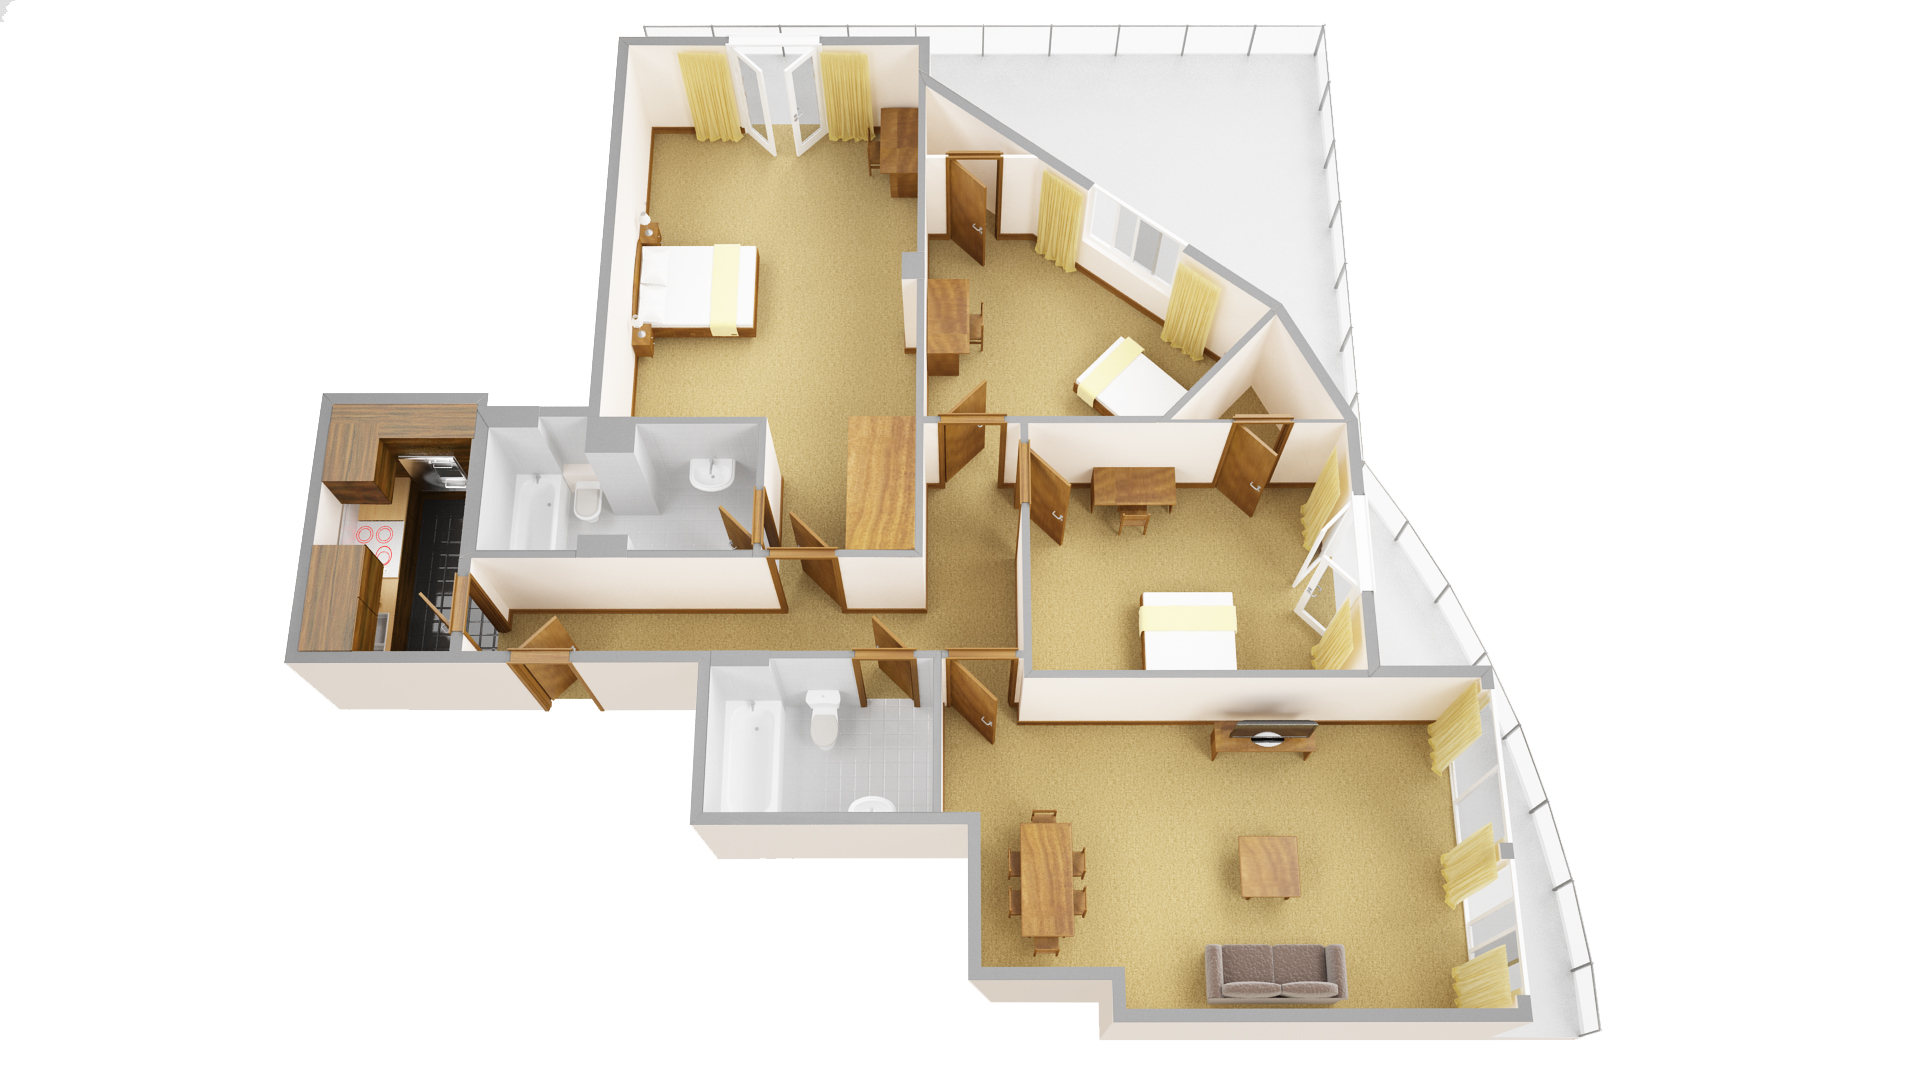 Fifth floor plan at Sanctum Maida Vale